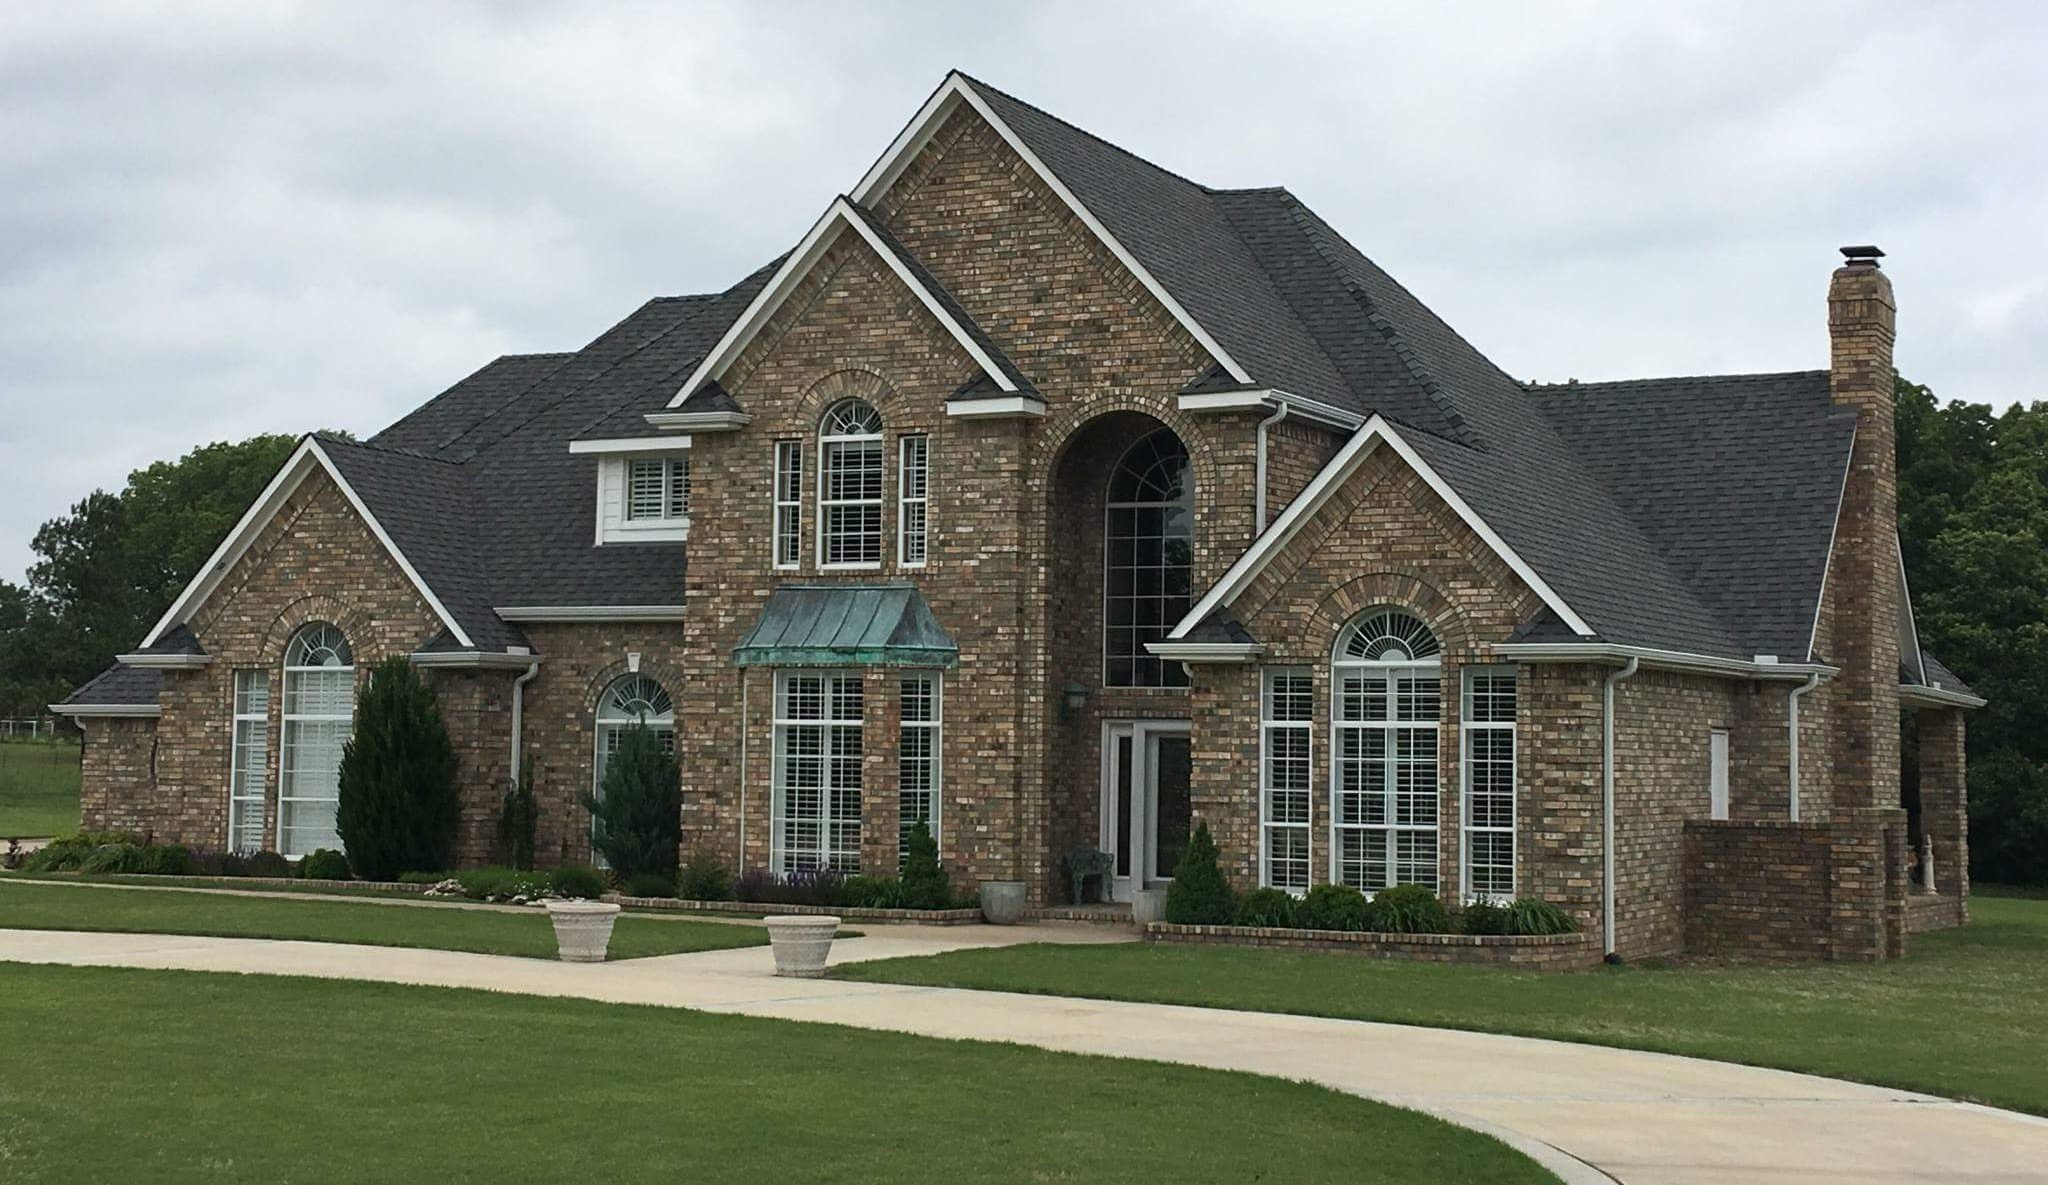 white house with black tiled roof installed by roofing contractors of Jenks, OK